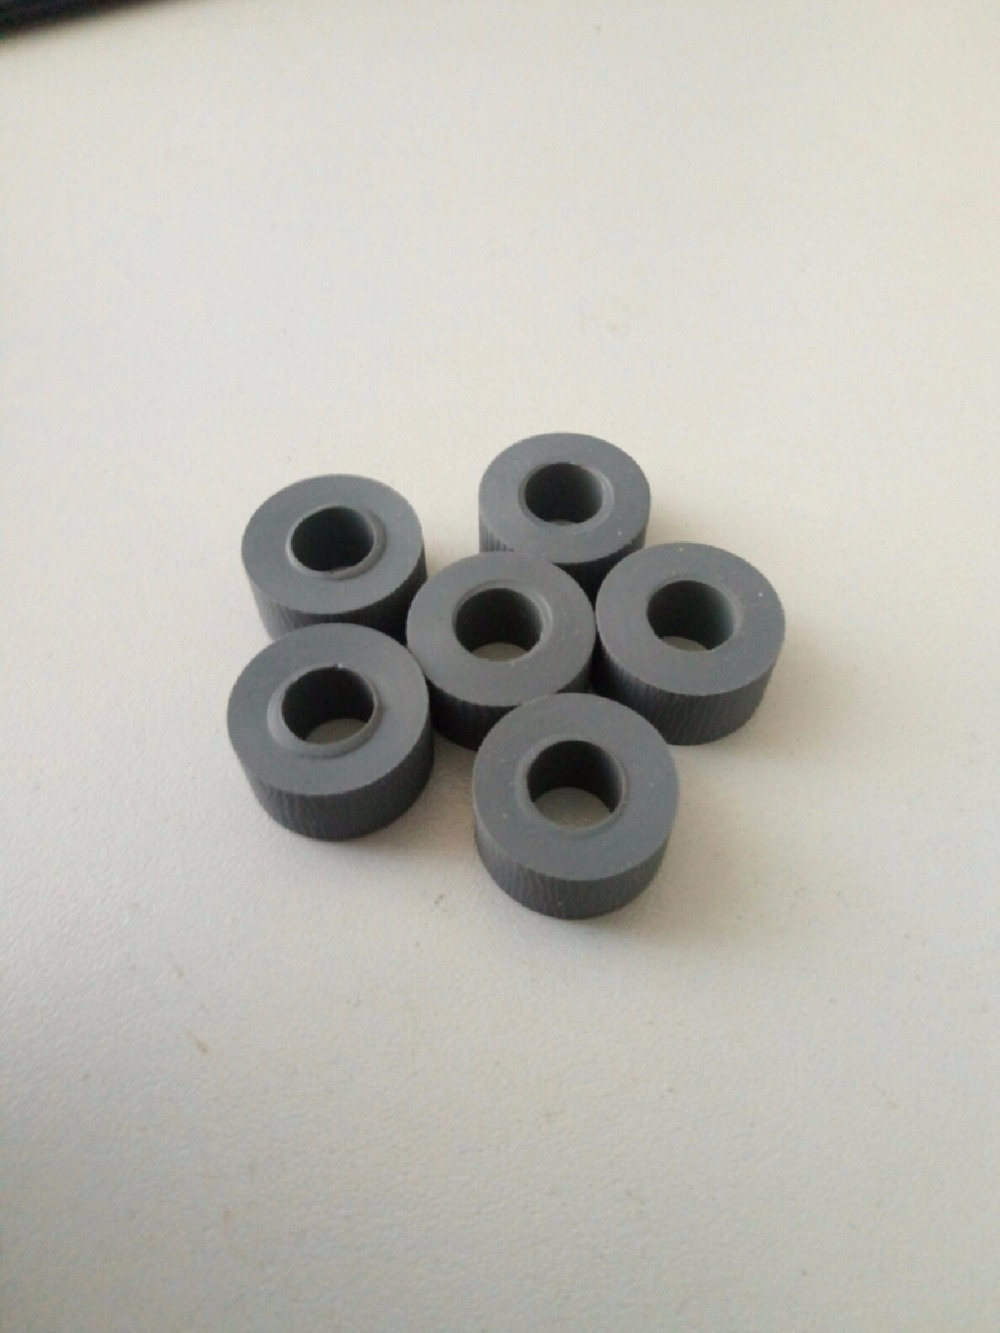 24PC* Feed Pickup Roller tire for Xerox 133 C123 C128 1632 2240 3535 5500 5550 <font><b>7700</b></font> 7760 5225 5230 7228 7232 7235 7245 7328 7335 image